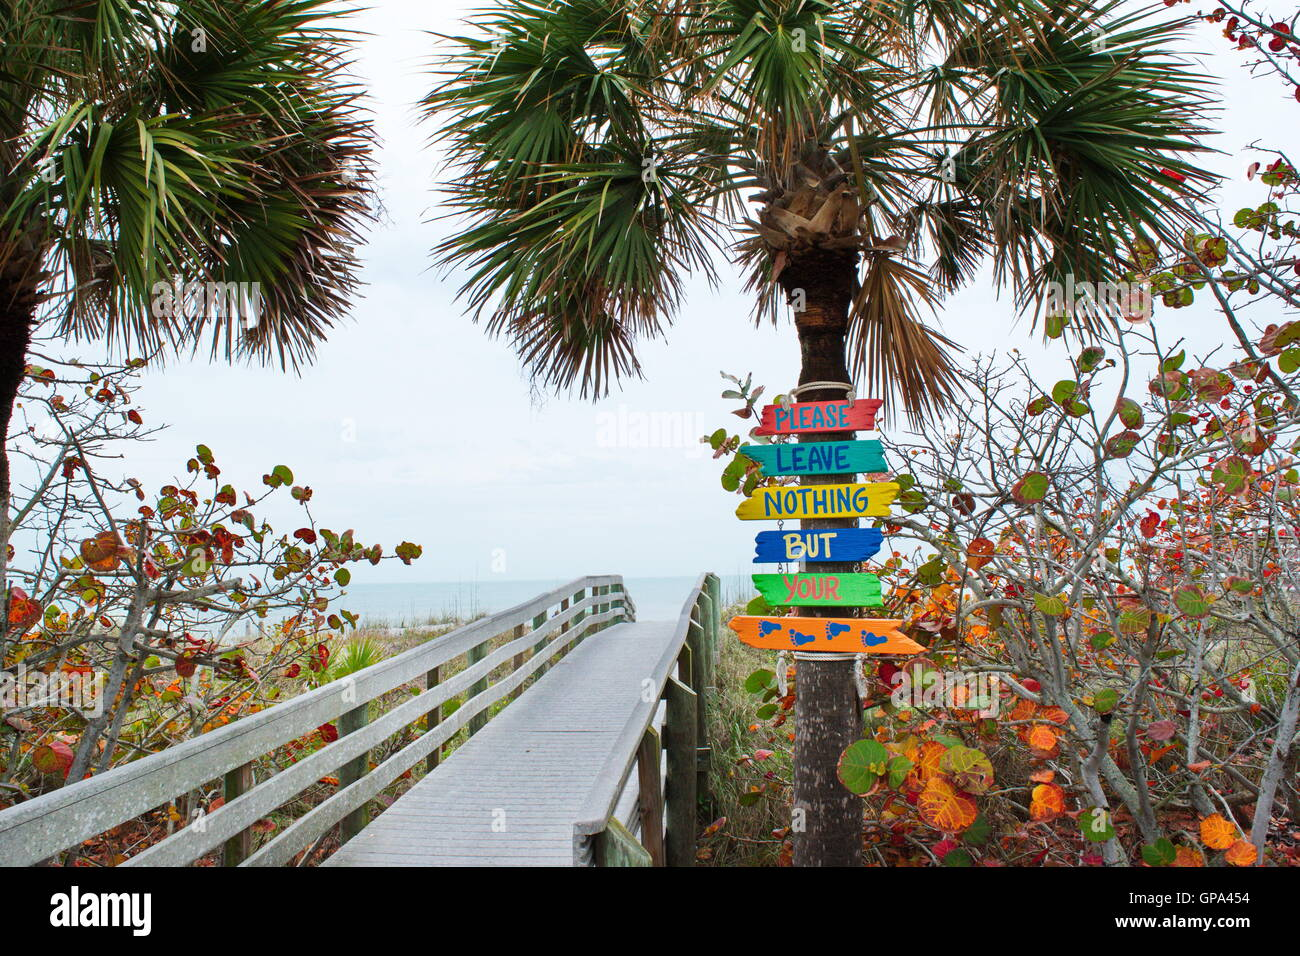 Colorful signs leading to the beach on the Gulf Coast of Florida encourage travelers to not leave any items. - Stock Image